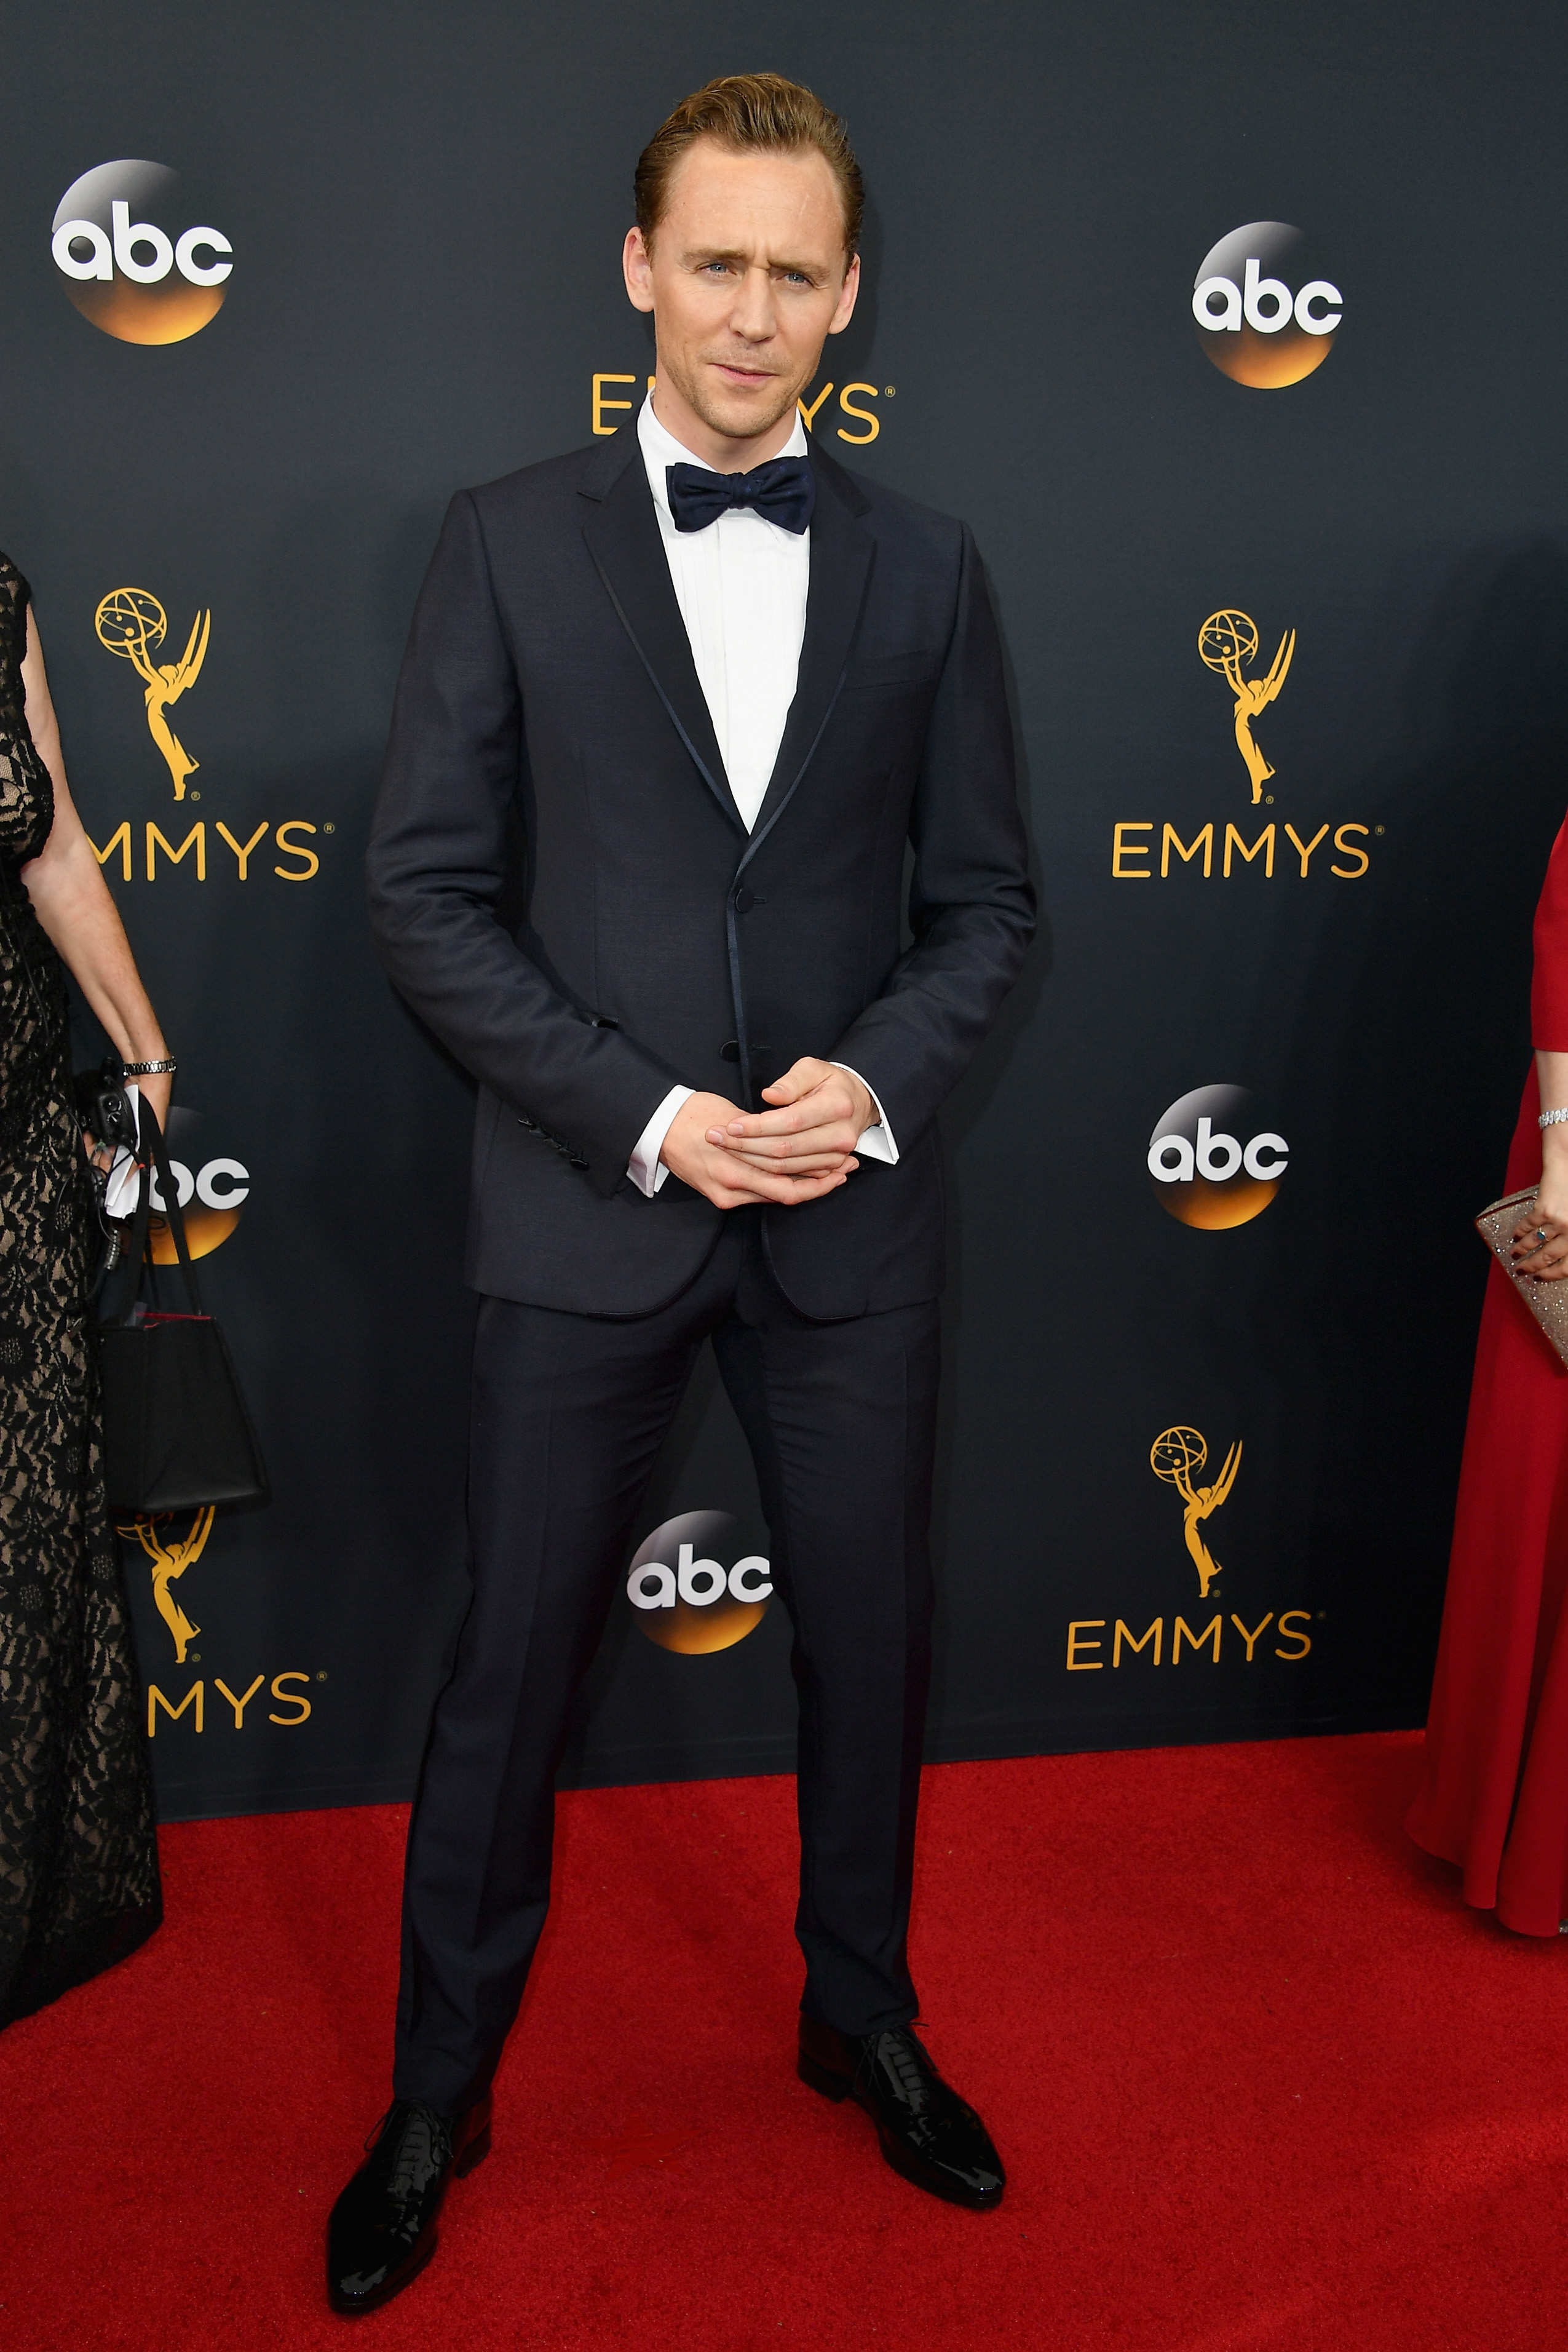 Tom Hiddleson arrives at the 68th Annual Primetime Emmy Awards at Microsoft Theater on Sept. 18, 2016 in Los Angeles.